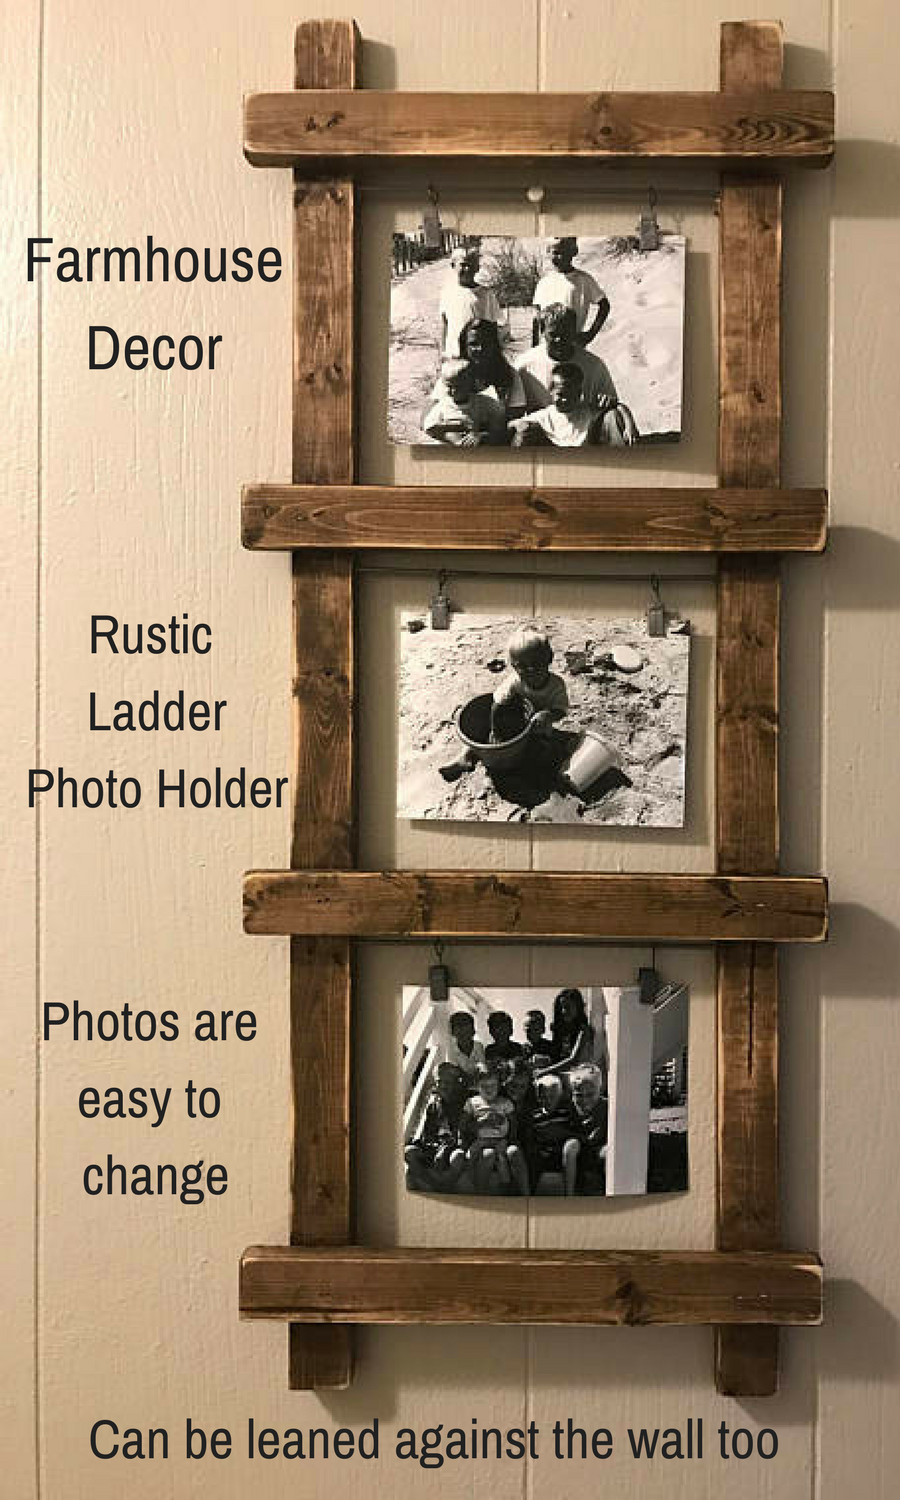 What a fantastic way to display photos in this rustic farmhouse